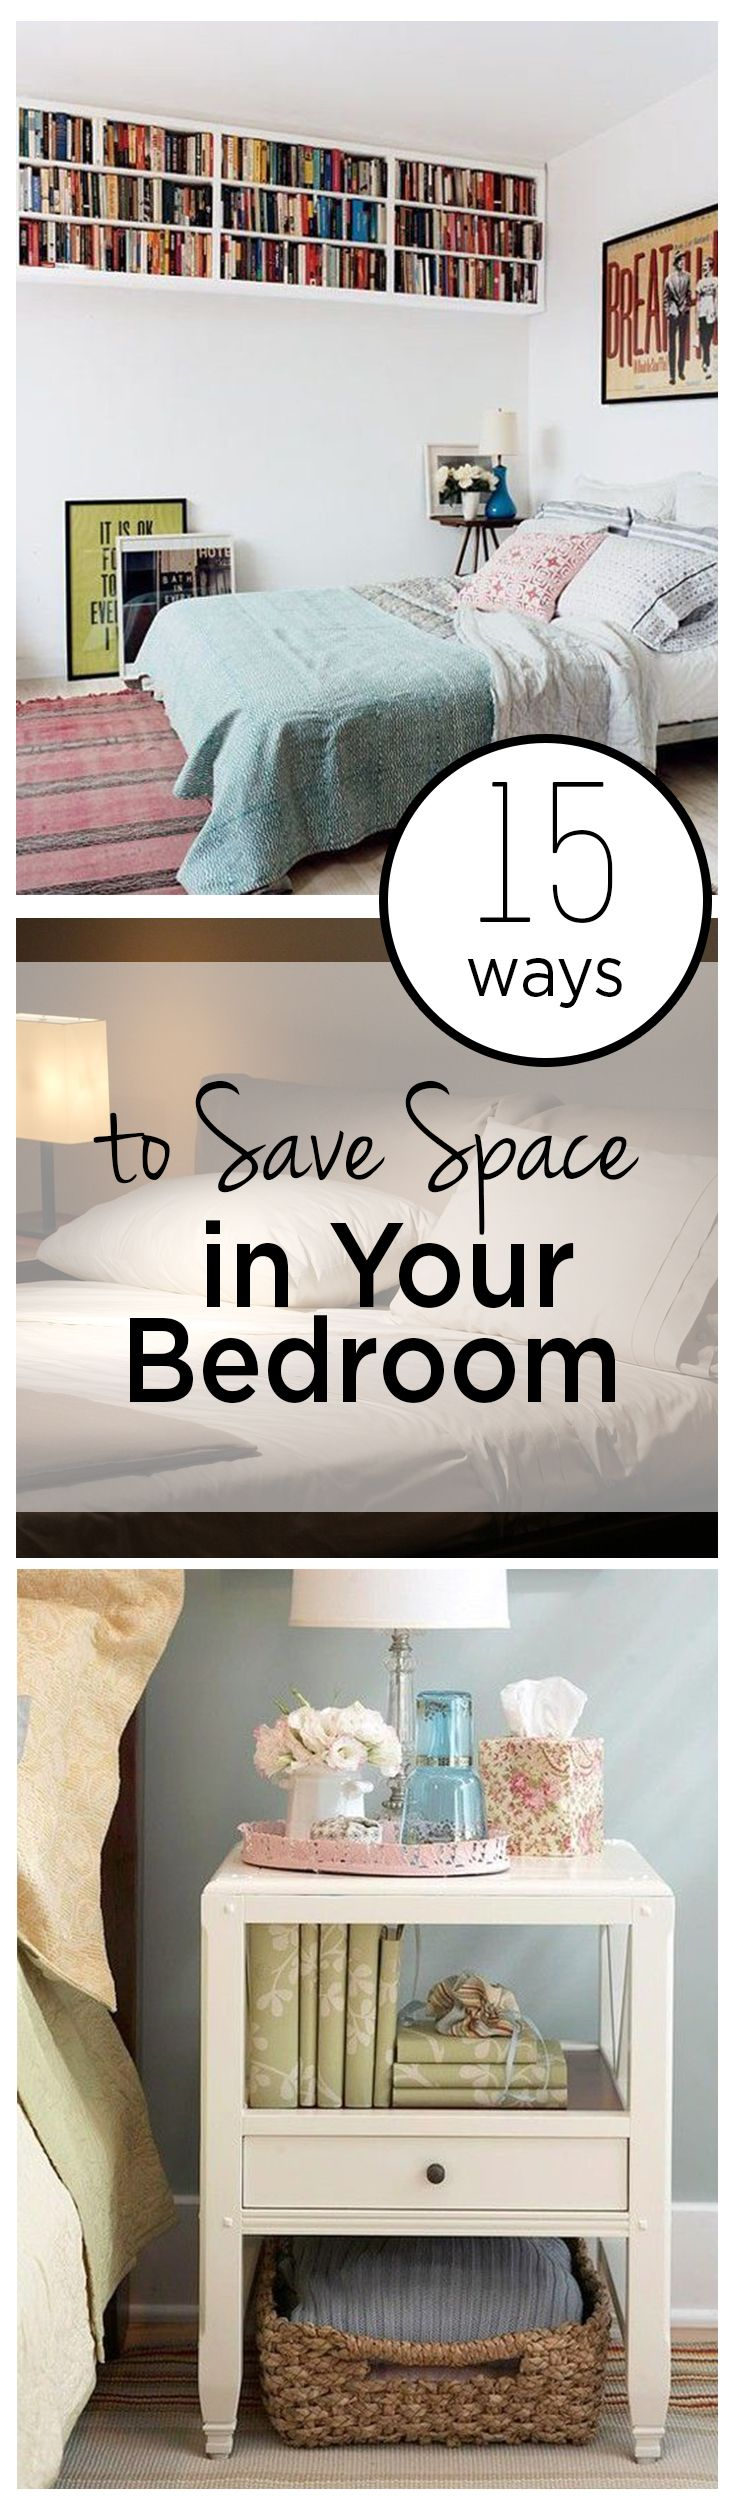 Organization For Bedrooms 17 Best Ideas About Bedroom Organization On Pinterest Room